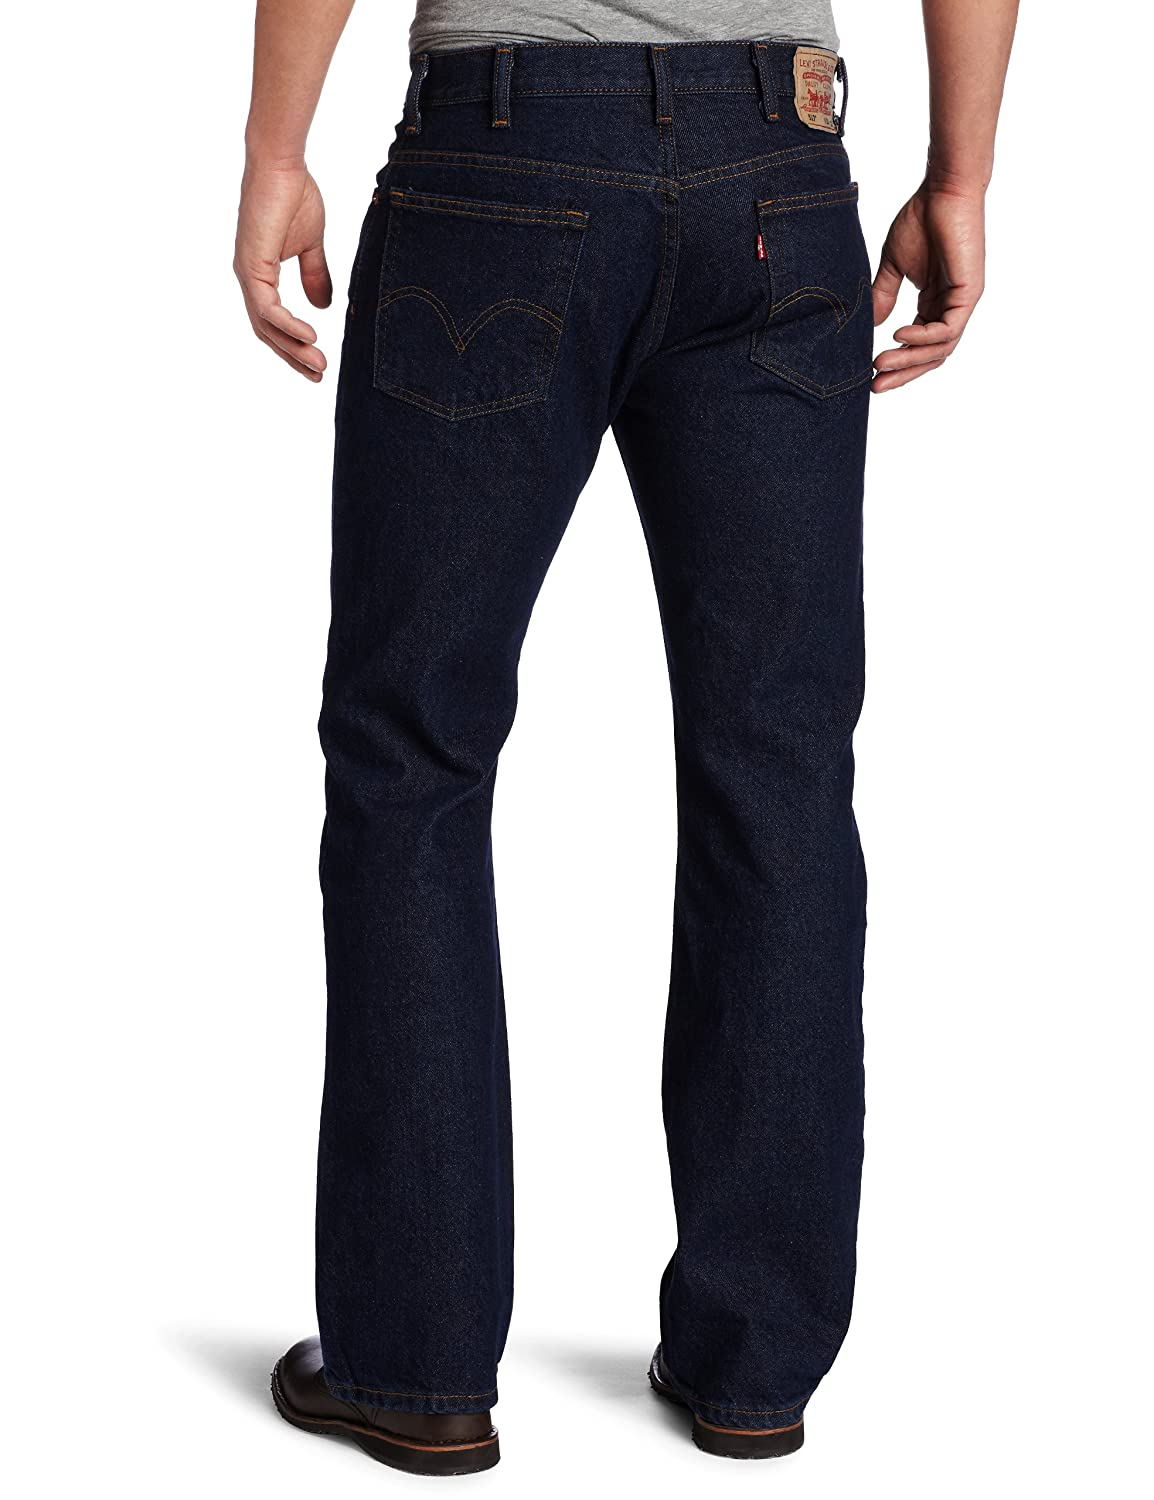 Bootcut Jeans Mens